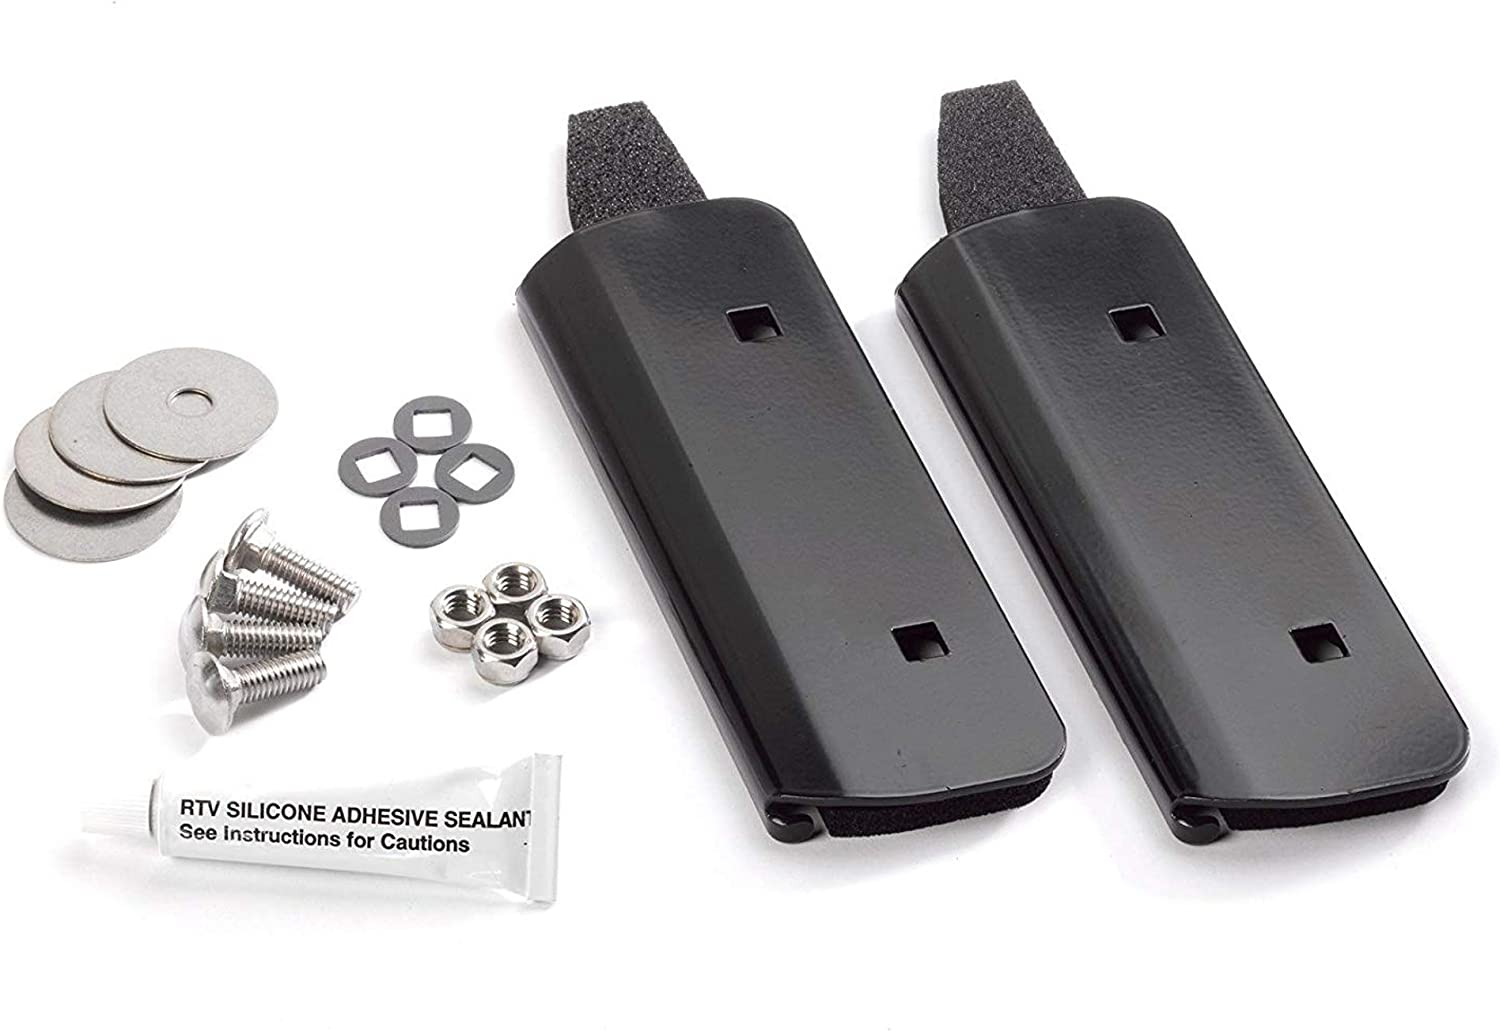 YAKIMA - Bolt TopLoader, Bracket for Vehicles with No Rain Gutters, Works with1A Raingutter Towers or Q Towers, Set of 2